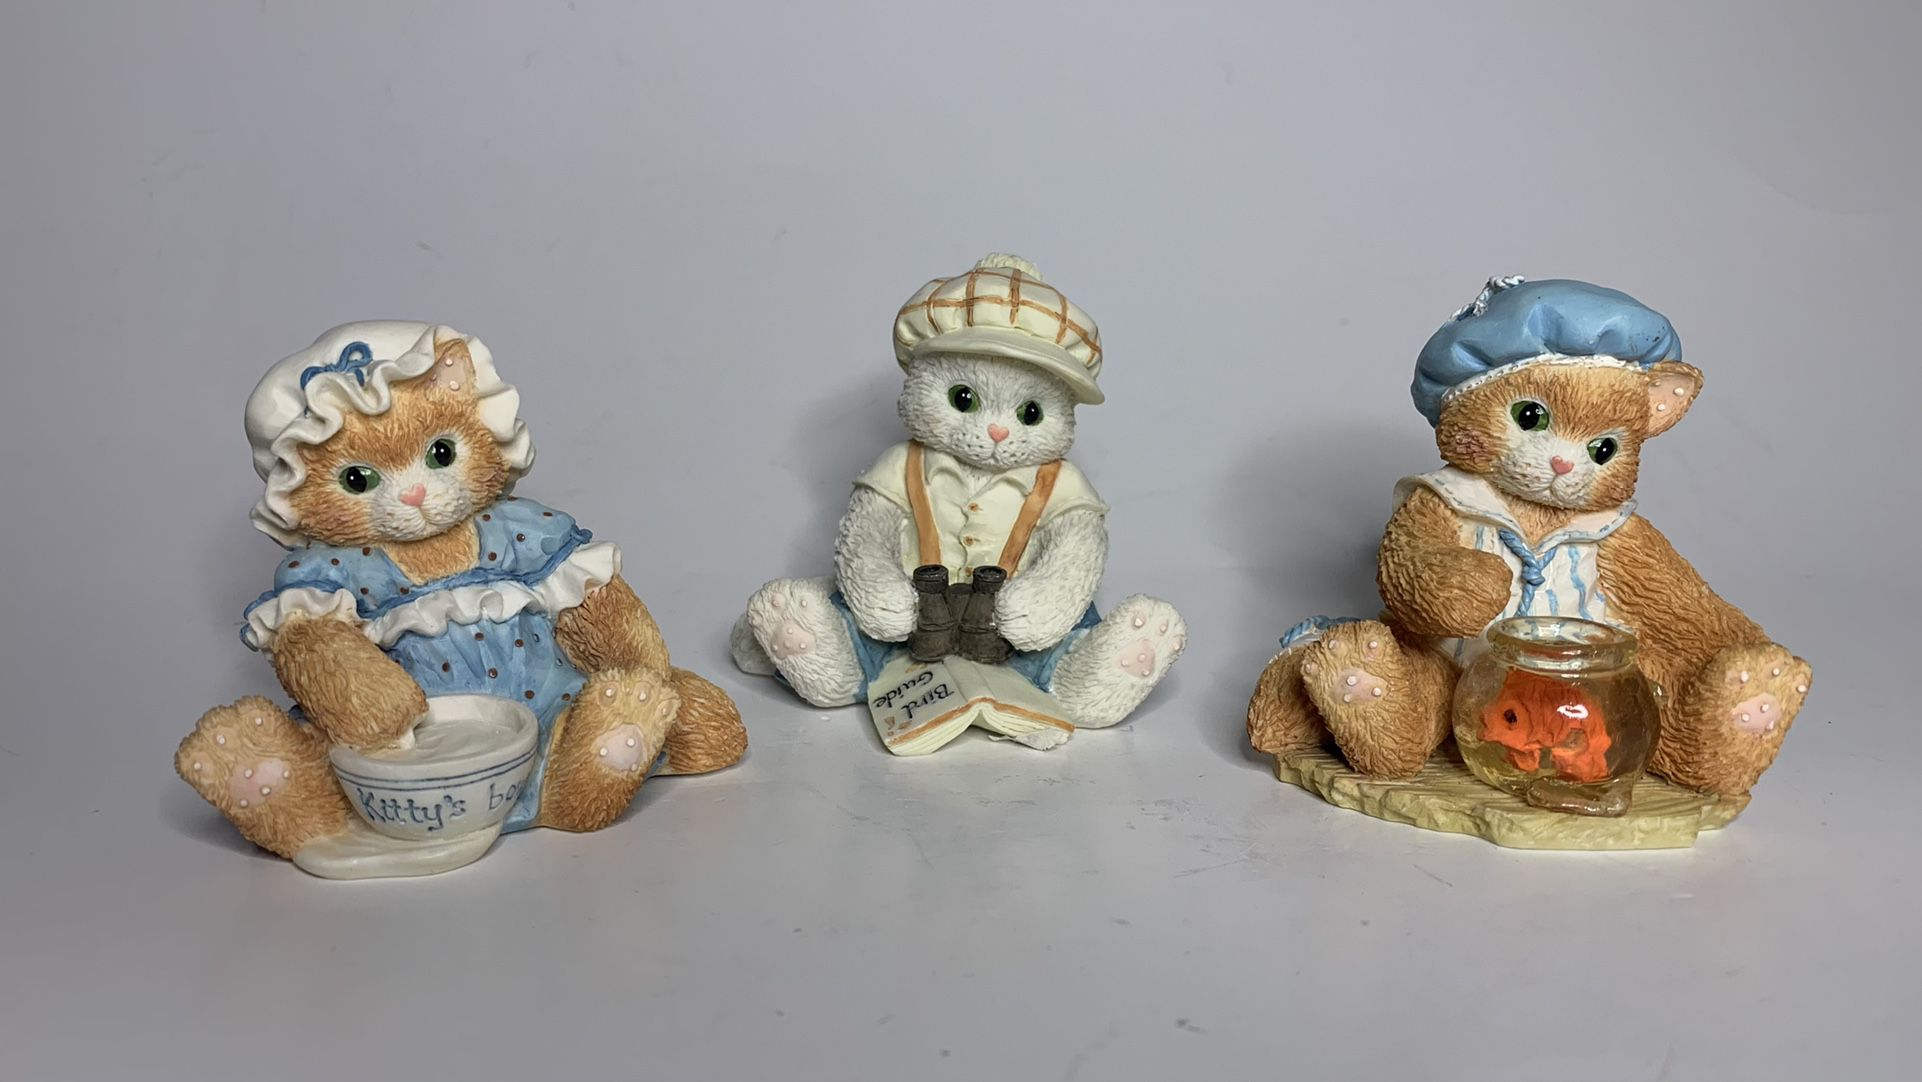 Vintage 1994 Enesco Calico Kittens Figurines Finicky, Observant, Mischievious